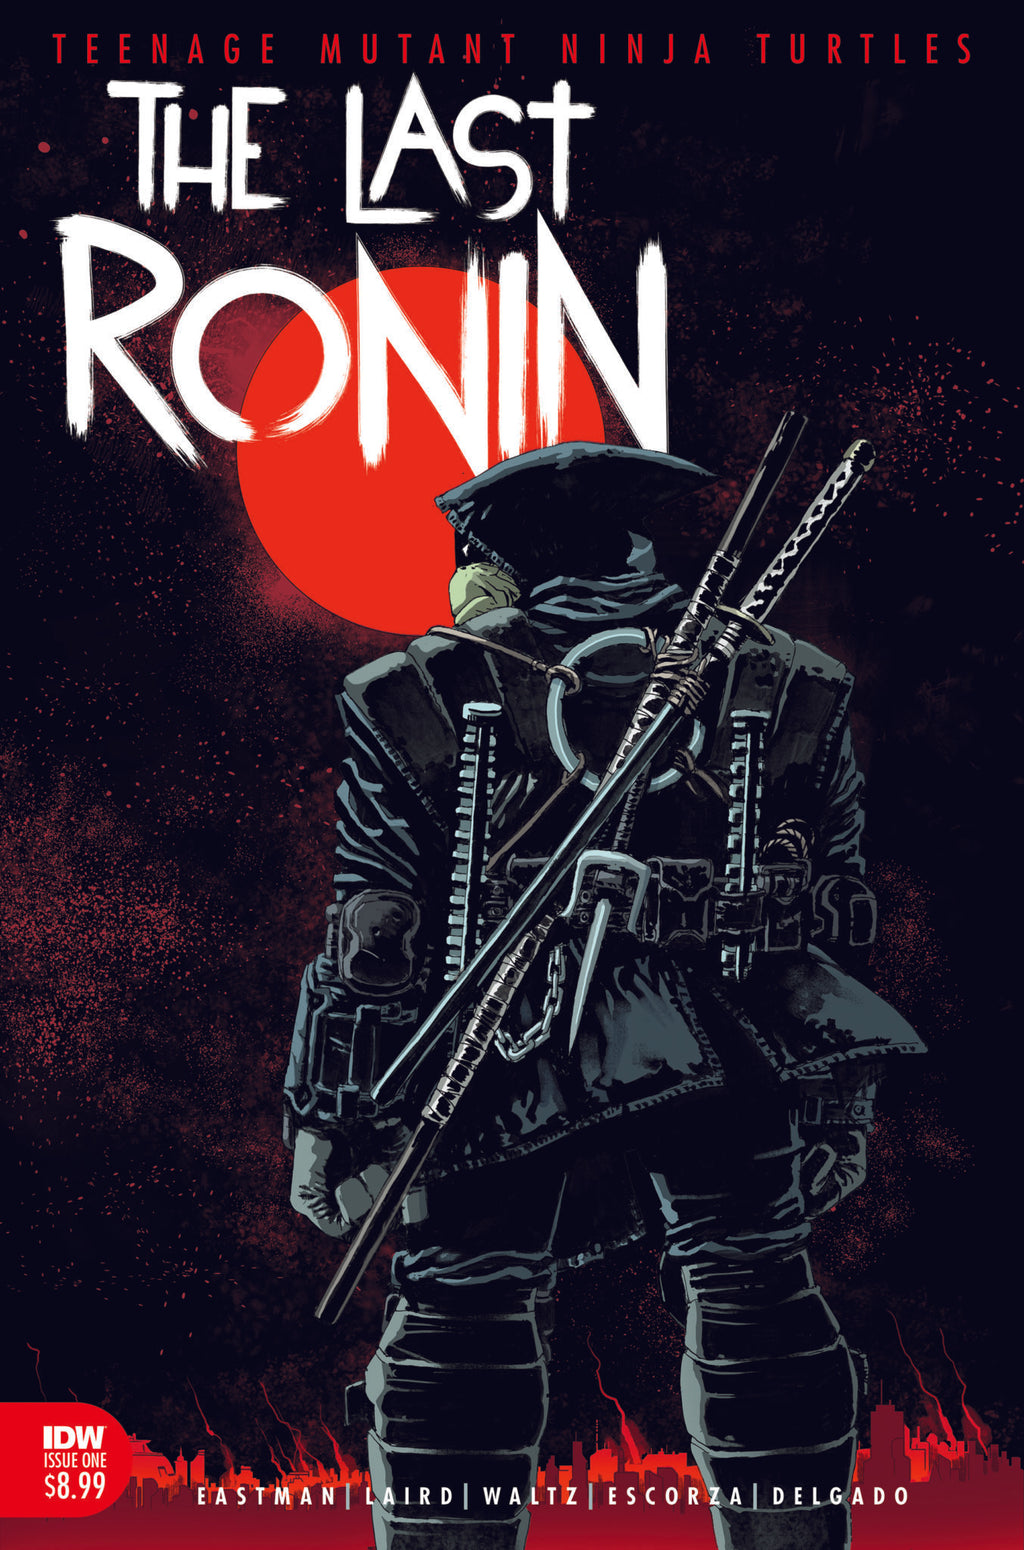 Teenage Mutant Ninja Turtles: The Last Ronin #1